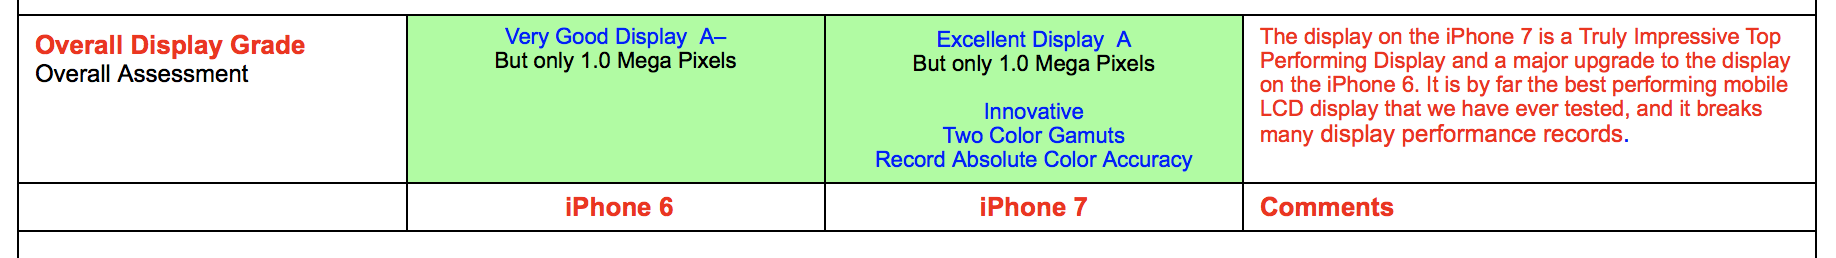 iphone7-iphone6-display_2